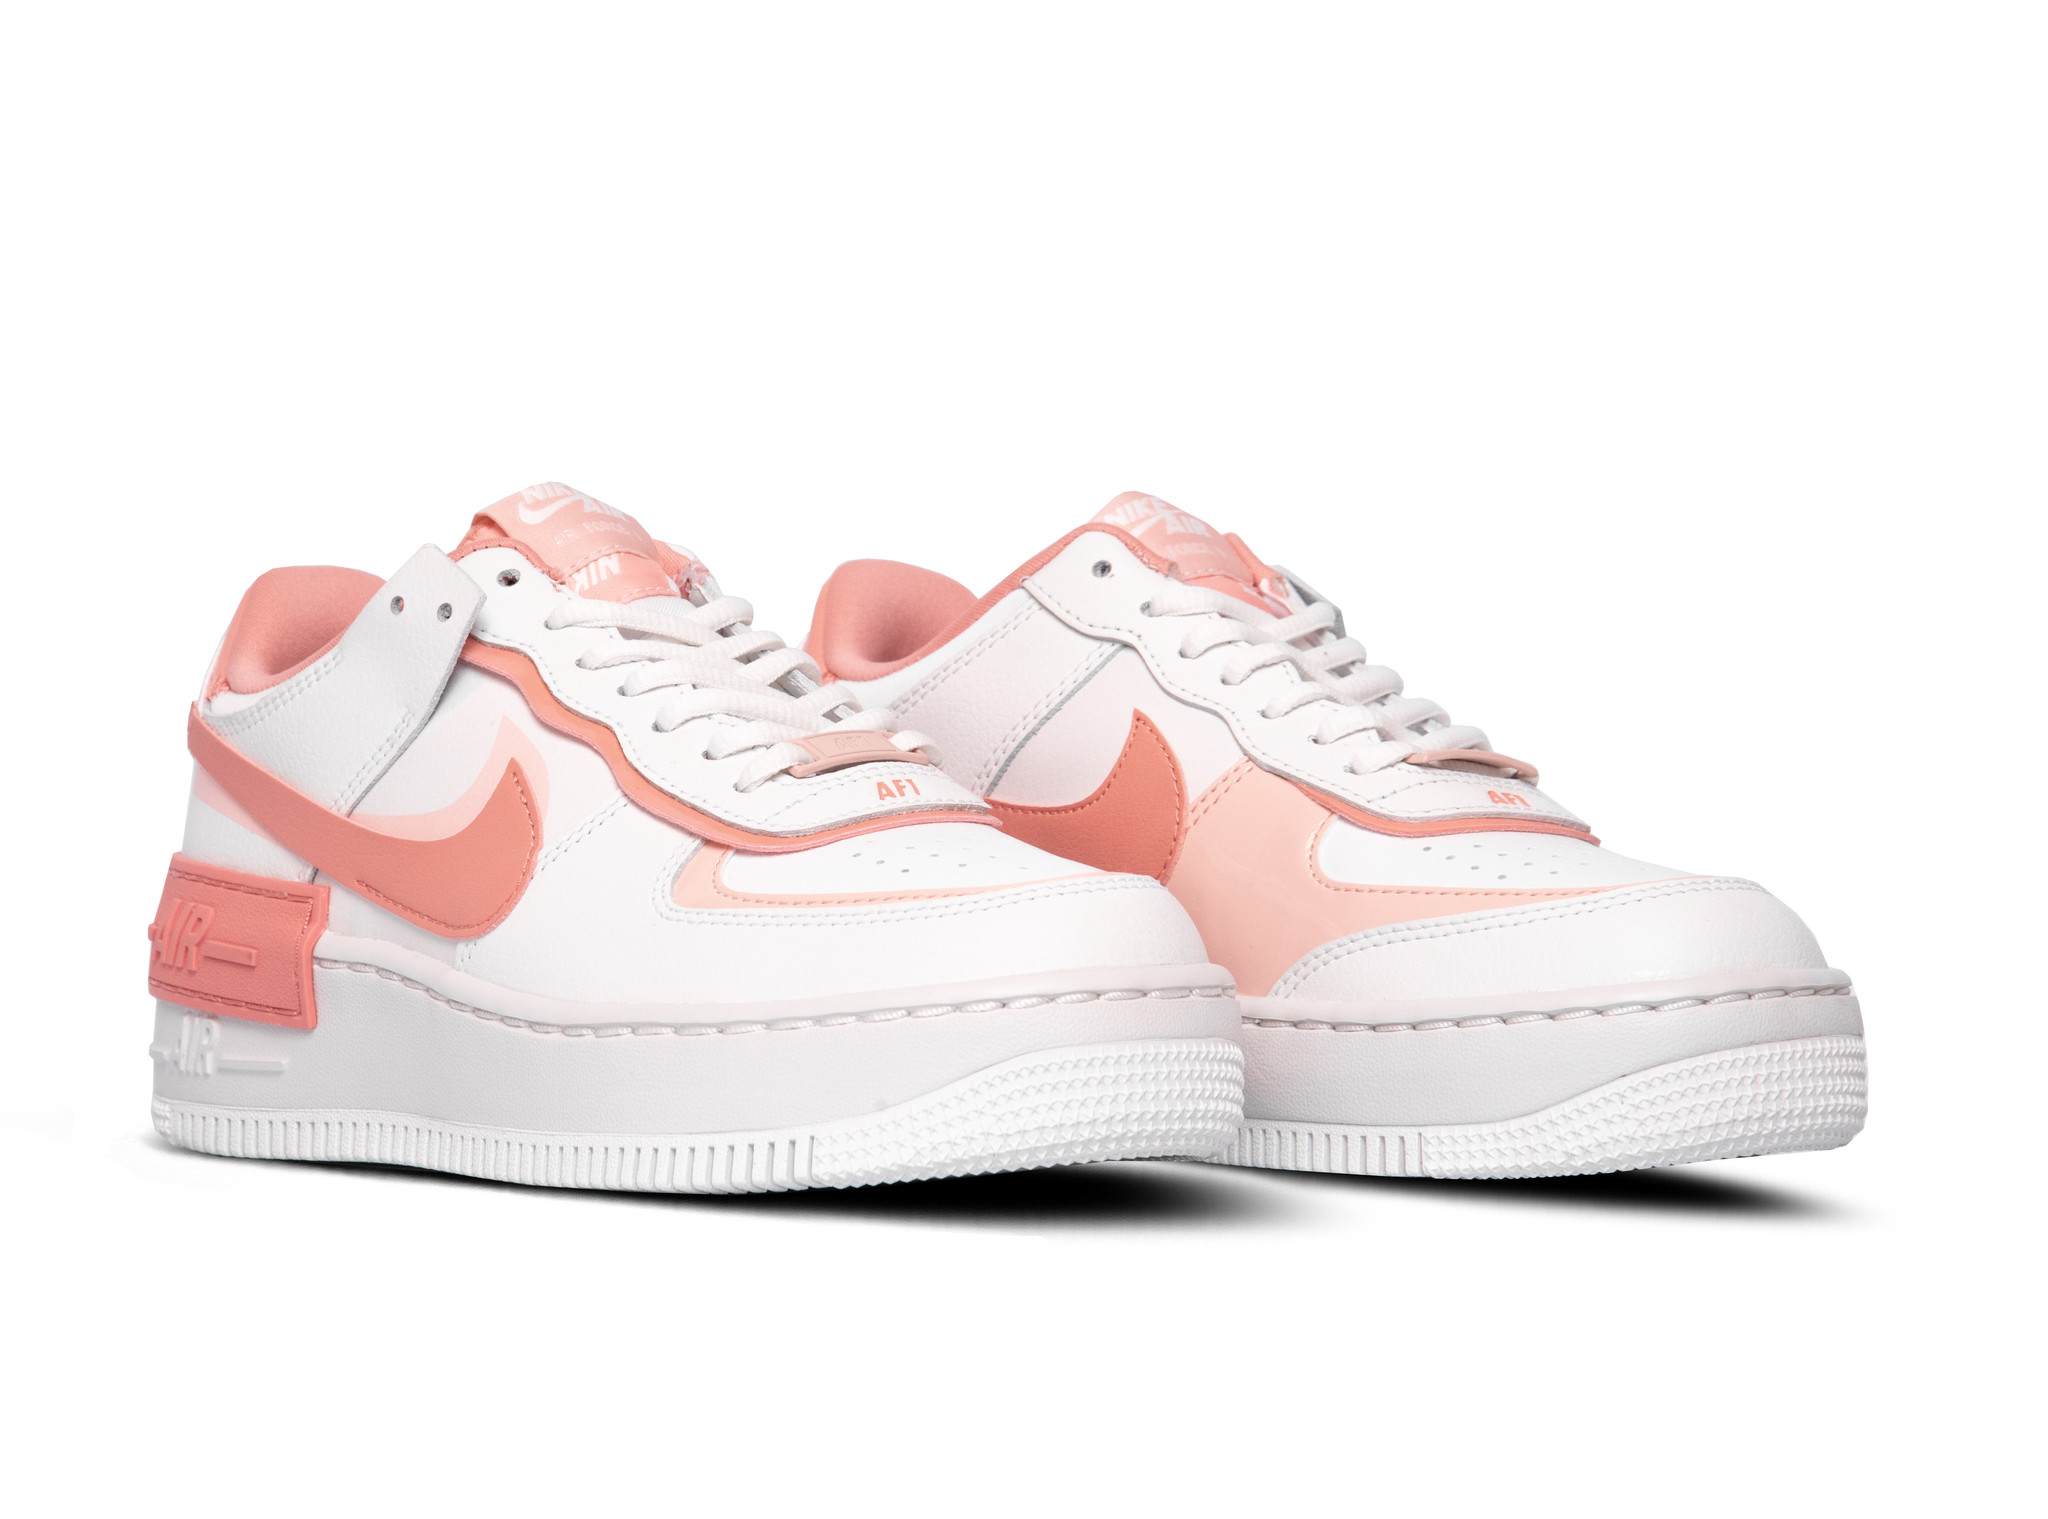 Nike Air Force 1 Shadow Summit White Pink Quartz Washed Coral CJ1641 101  CJ1641-101